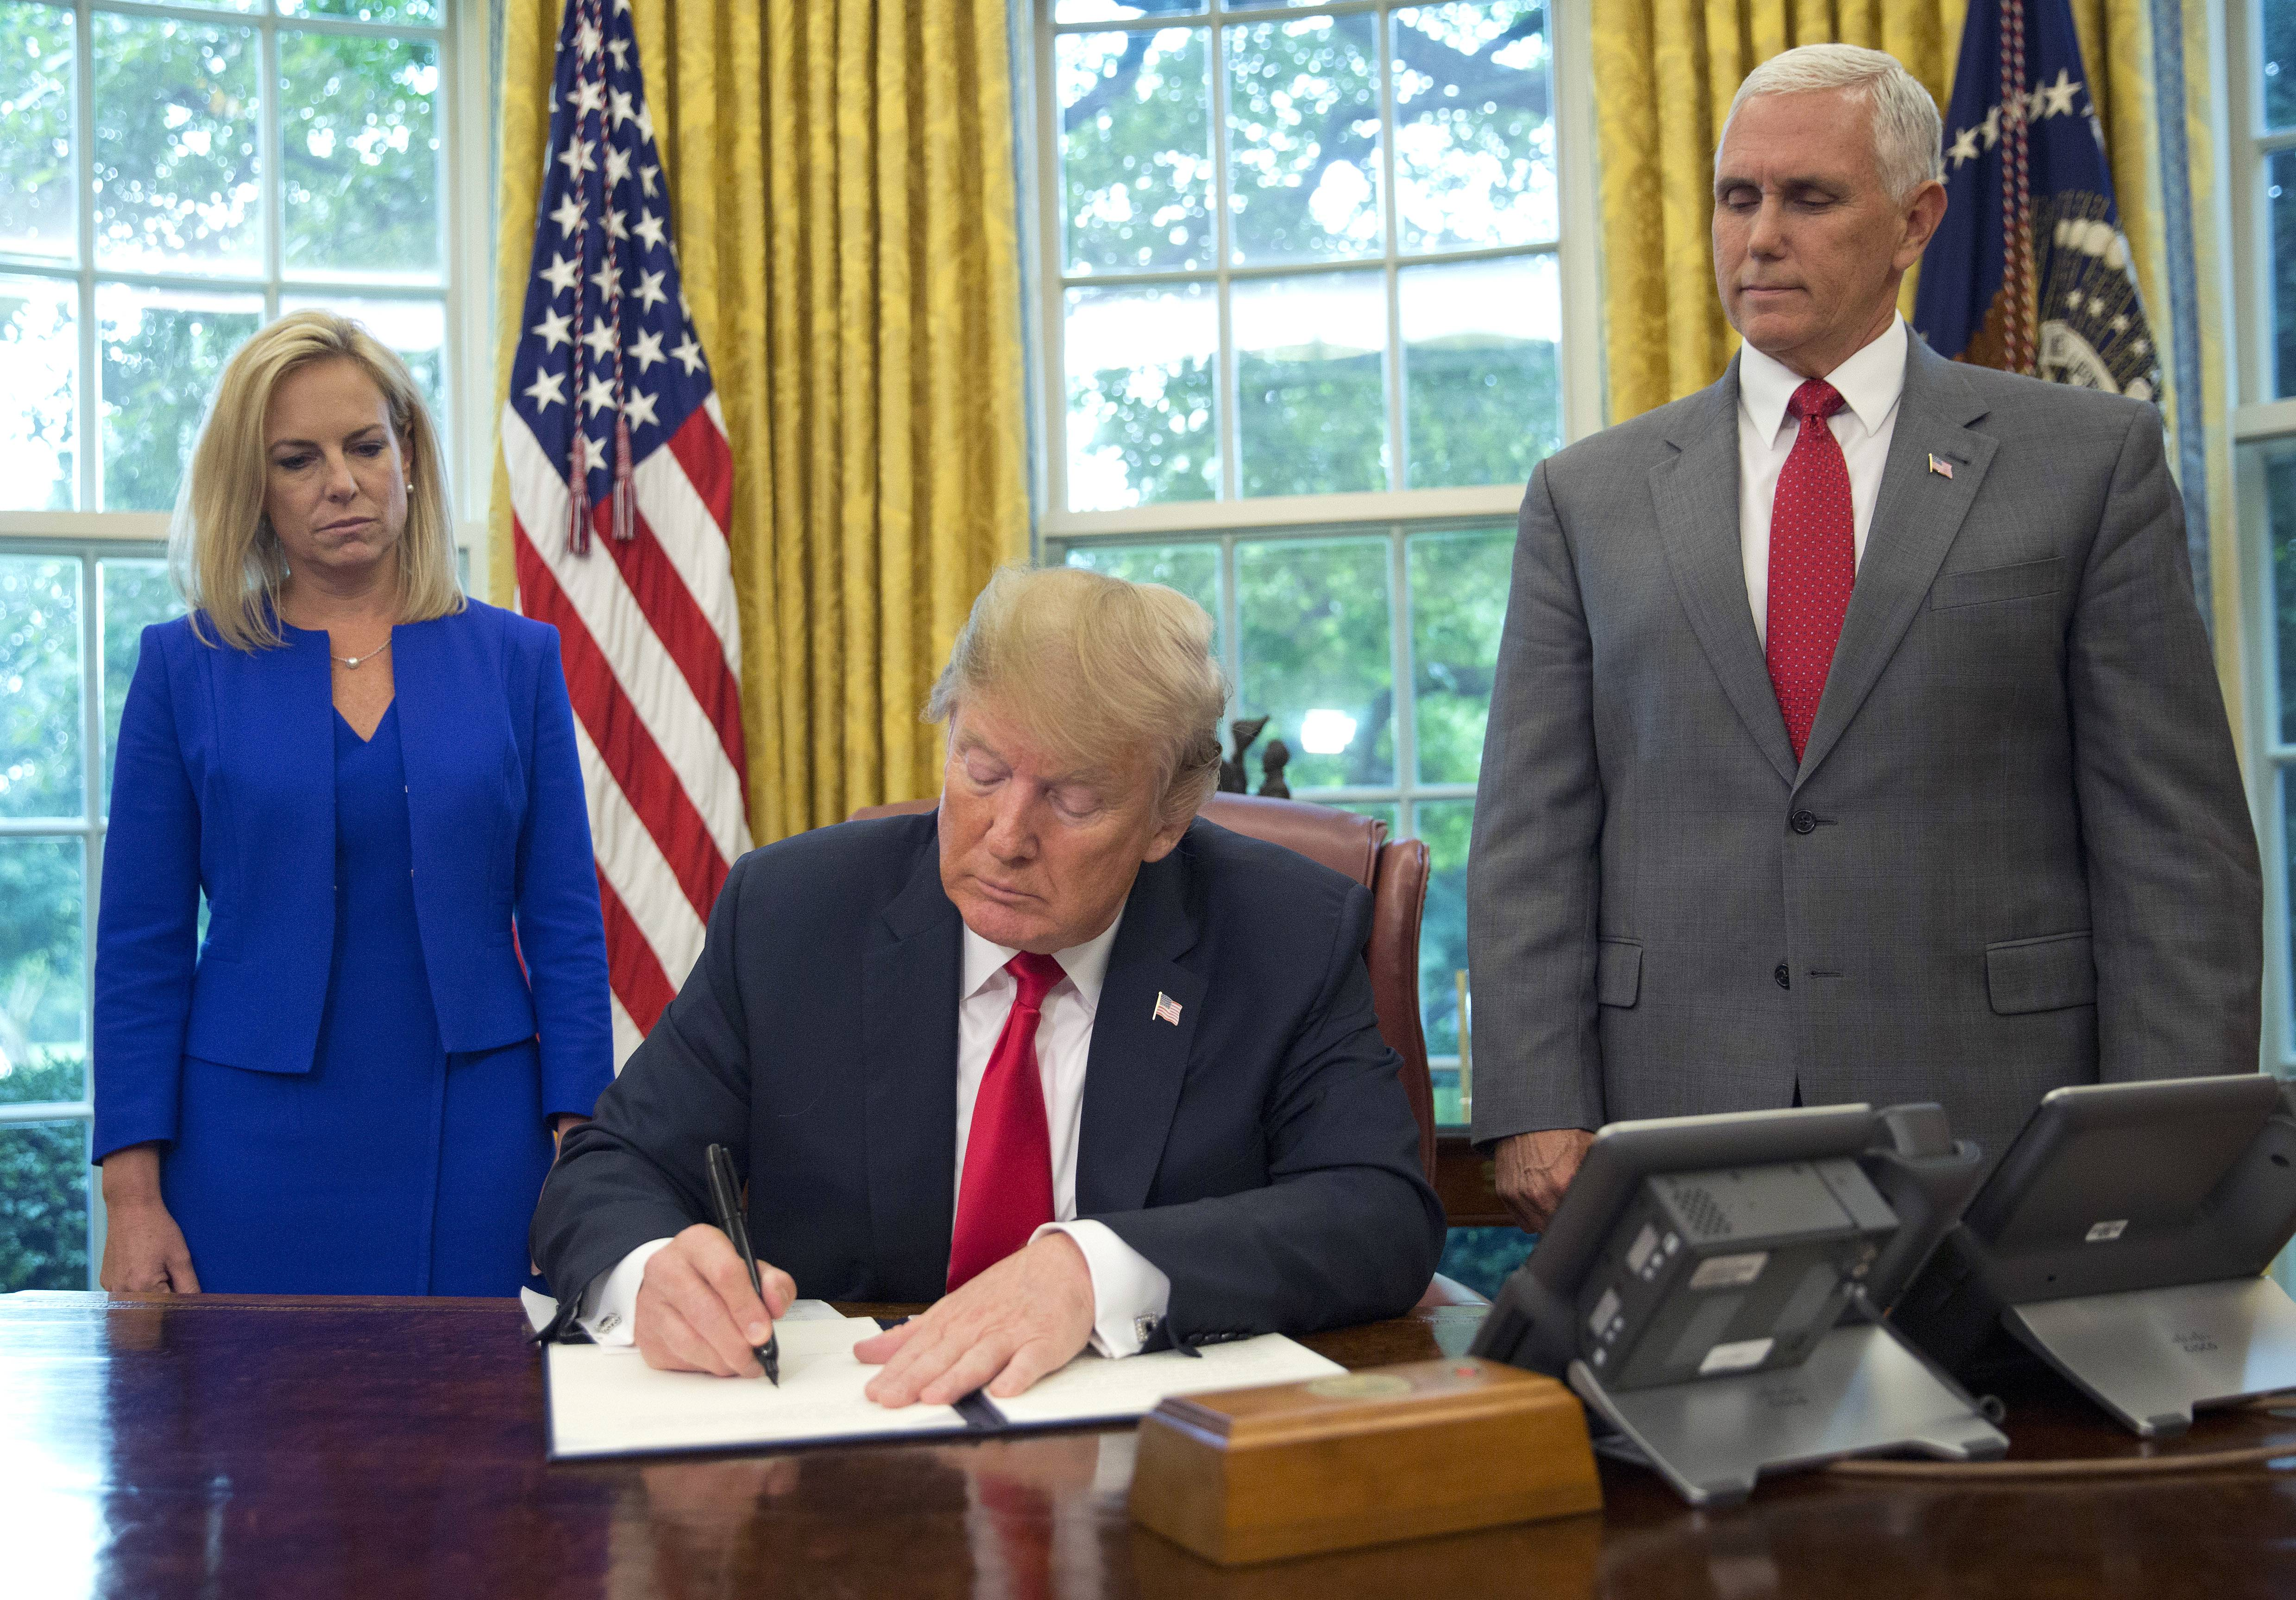 President Donald Trump signs an executive order Wednesday to keep families together at the border, but says that the 'zero-tolerance' prosecution policy will continue, during an event in the Oval Office of the White House in Washington. Standing behind Trump are Homeland Security Secretary Kirstjen Nielsen, left, and Vice President Mike Pence.